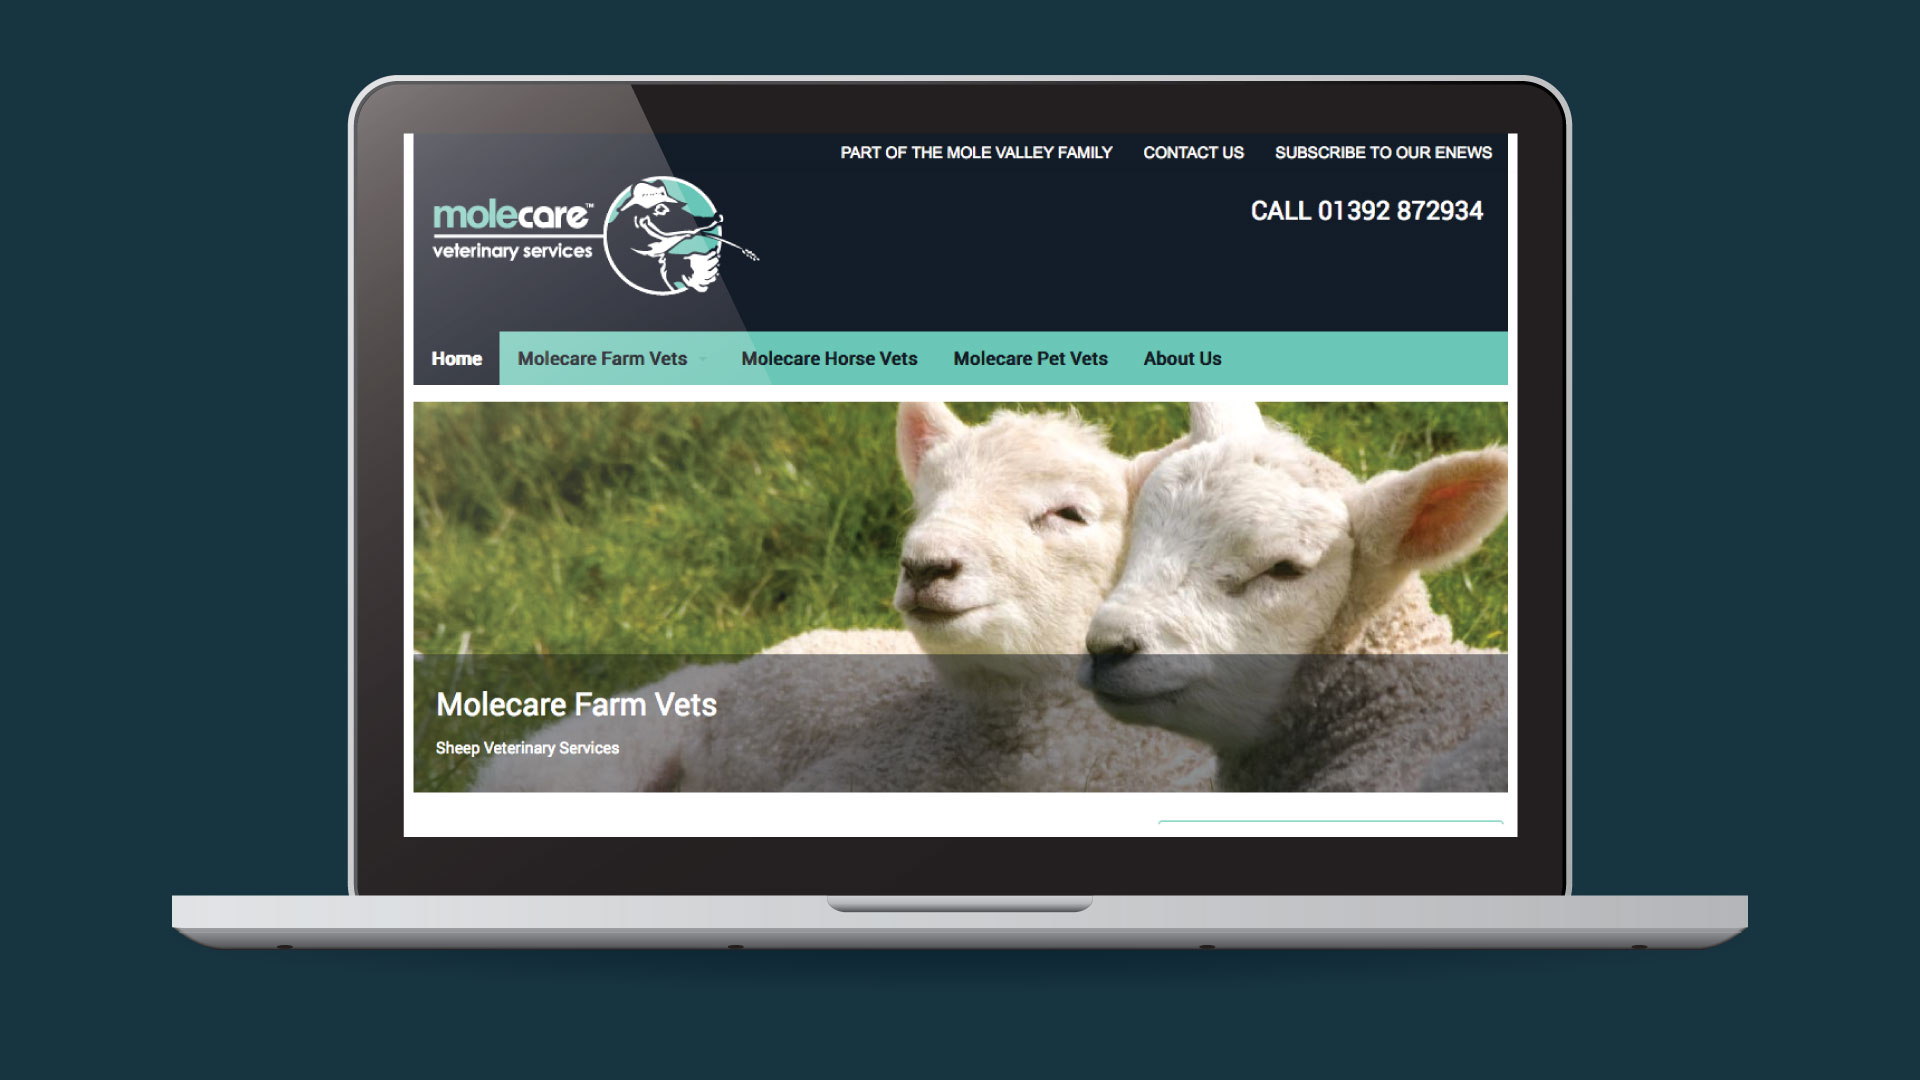 Molecare Vet Services Website Development in Devon